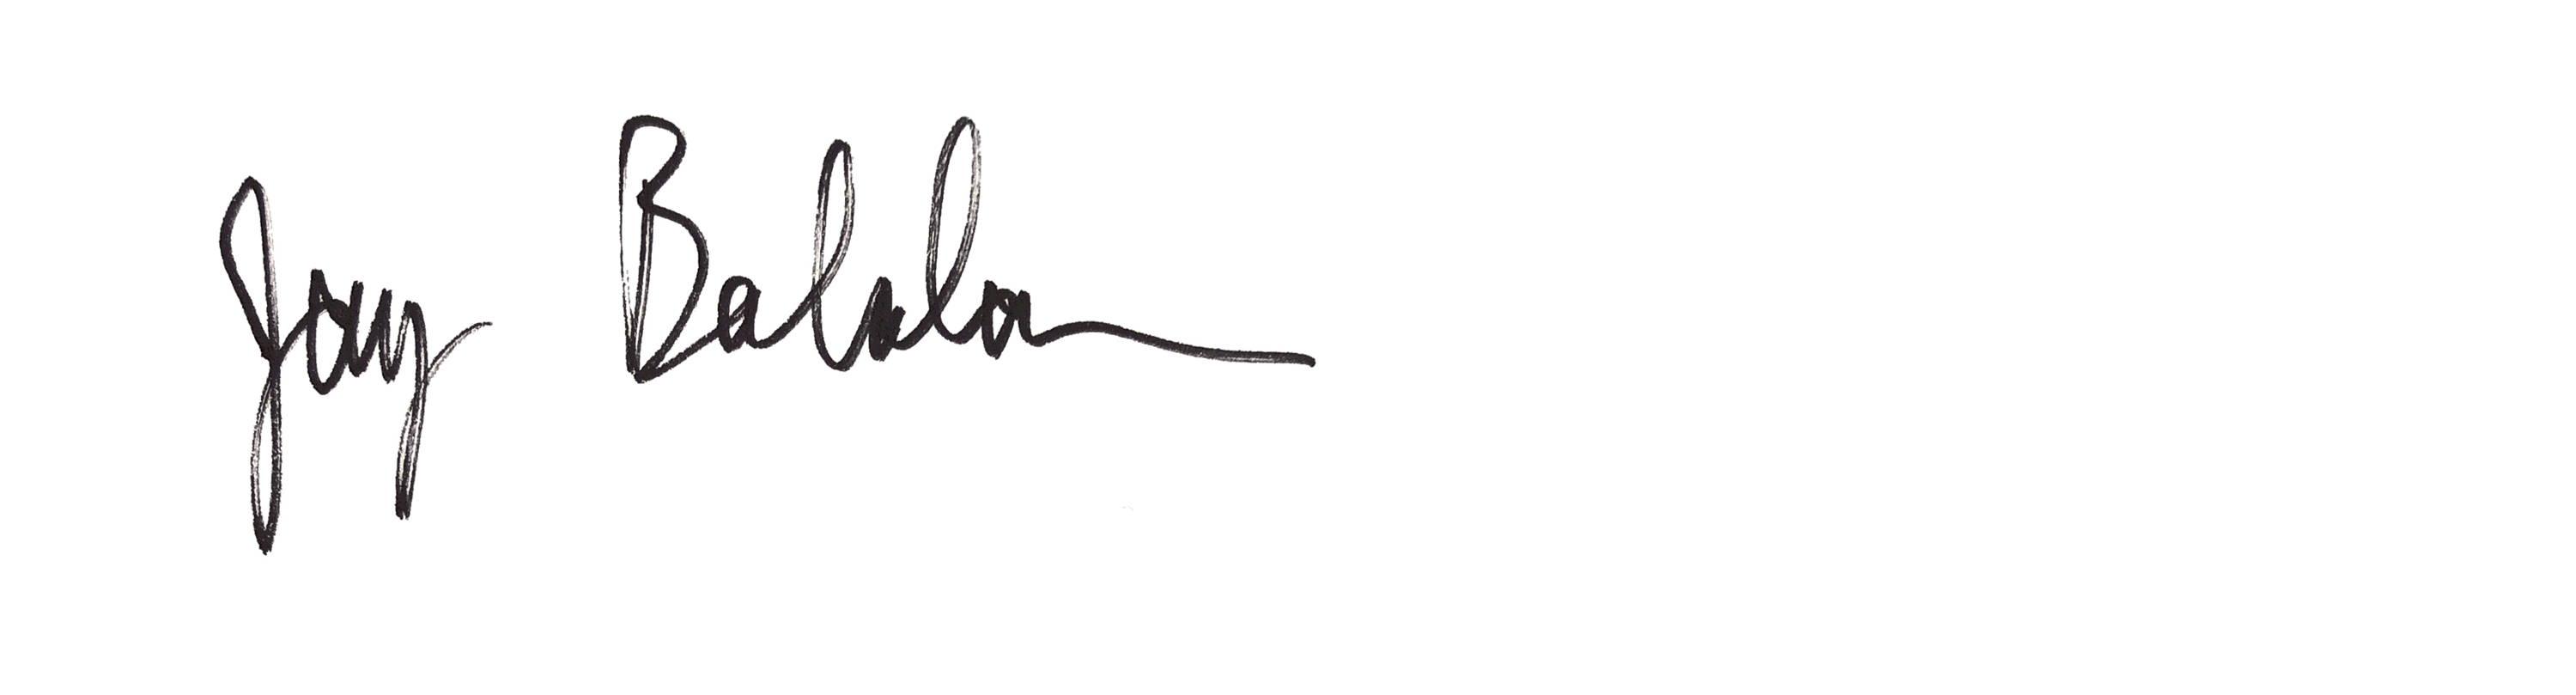 handwritten signature of ceo and founder of connected apparel jay balaban